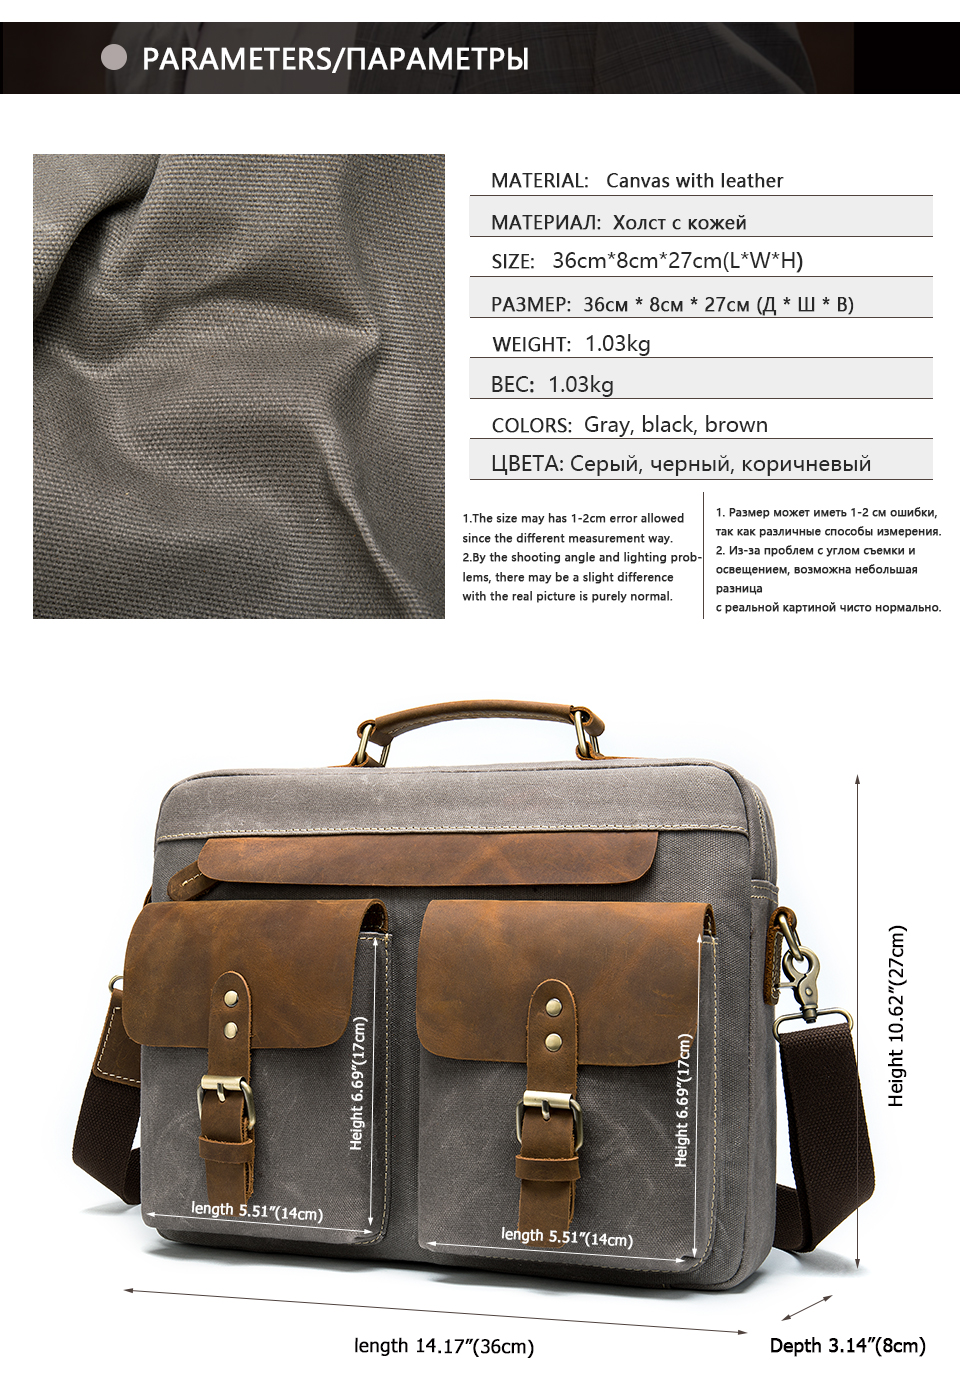 H5ab289cf713b4ac4a6f310bc5a755a55L WESTAL Men Briefcases Men's Bag Genuine Leather Business Office Bags for Men Laptop Bag Leather Briefcases Male Lawyer Bags